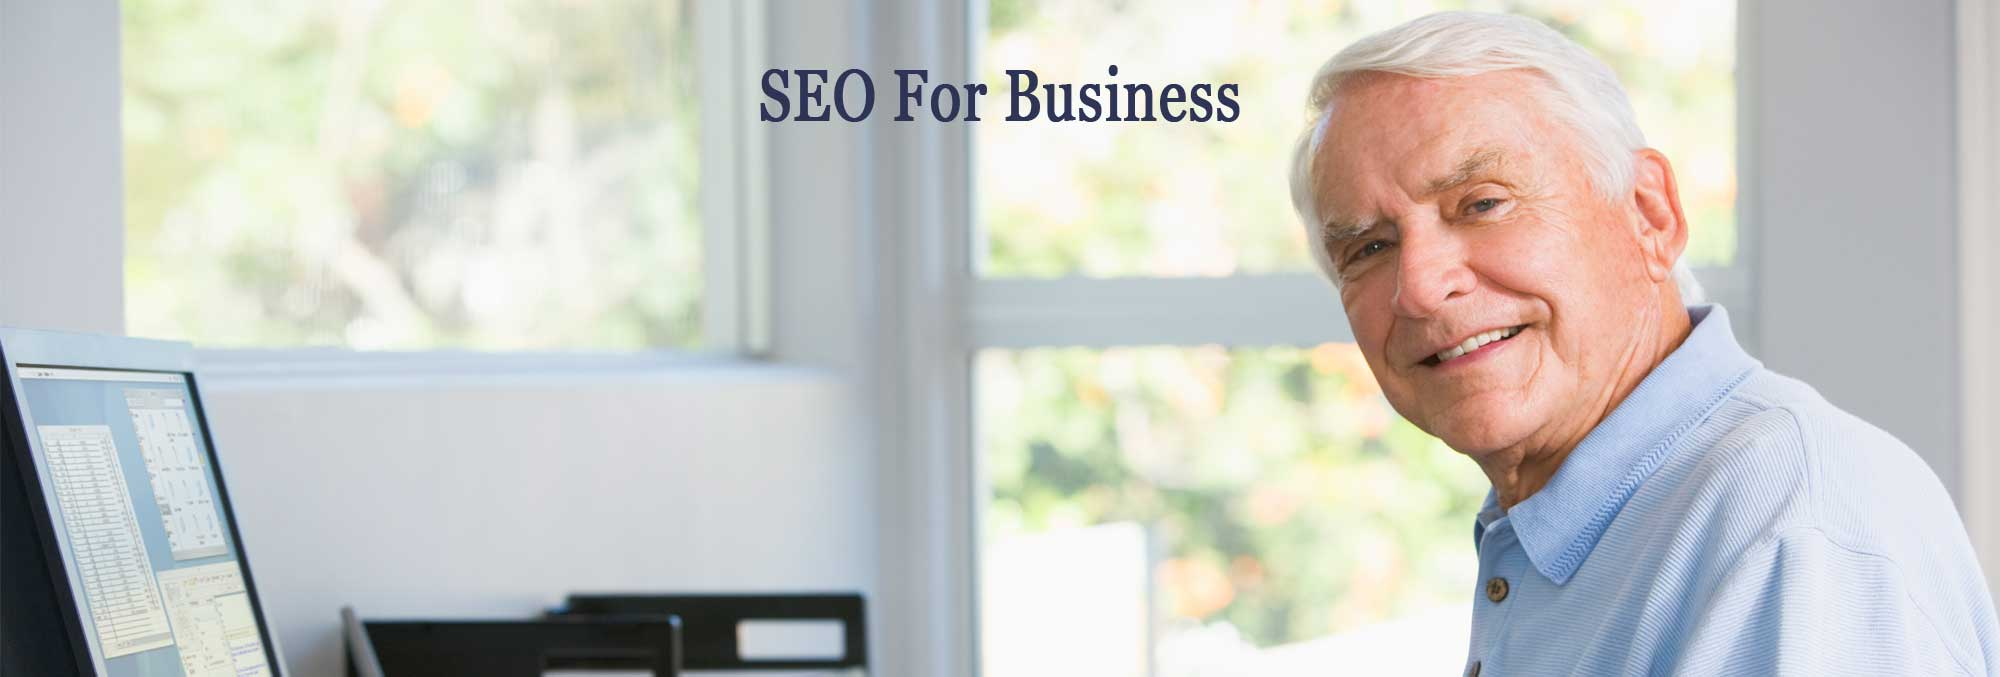 SEO Search Engine Optimization For Business Missouri